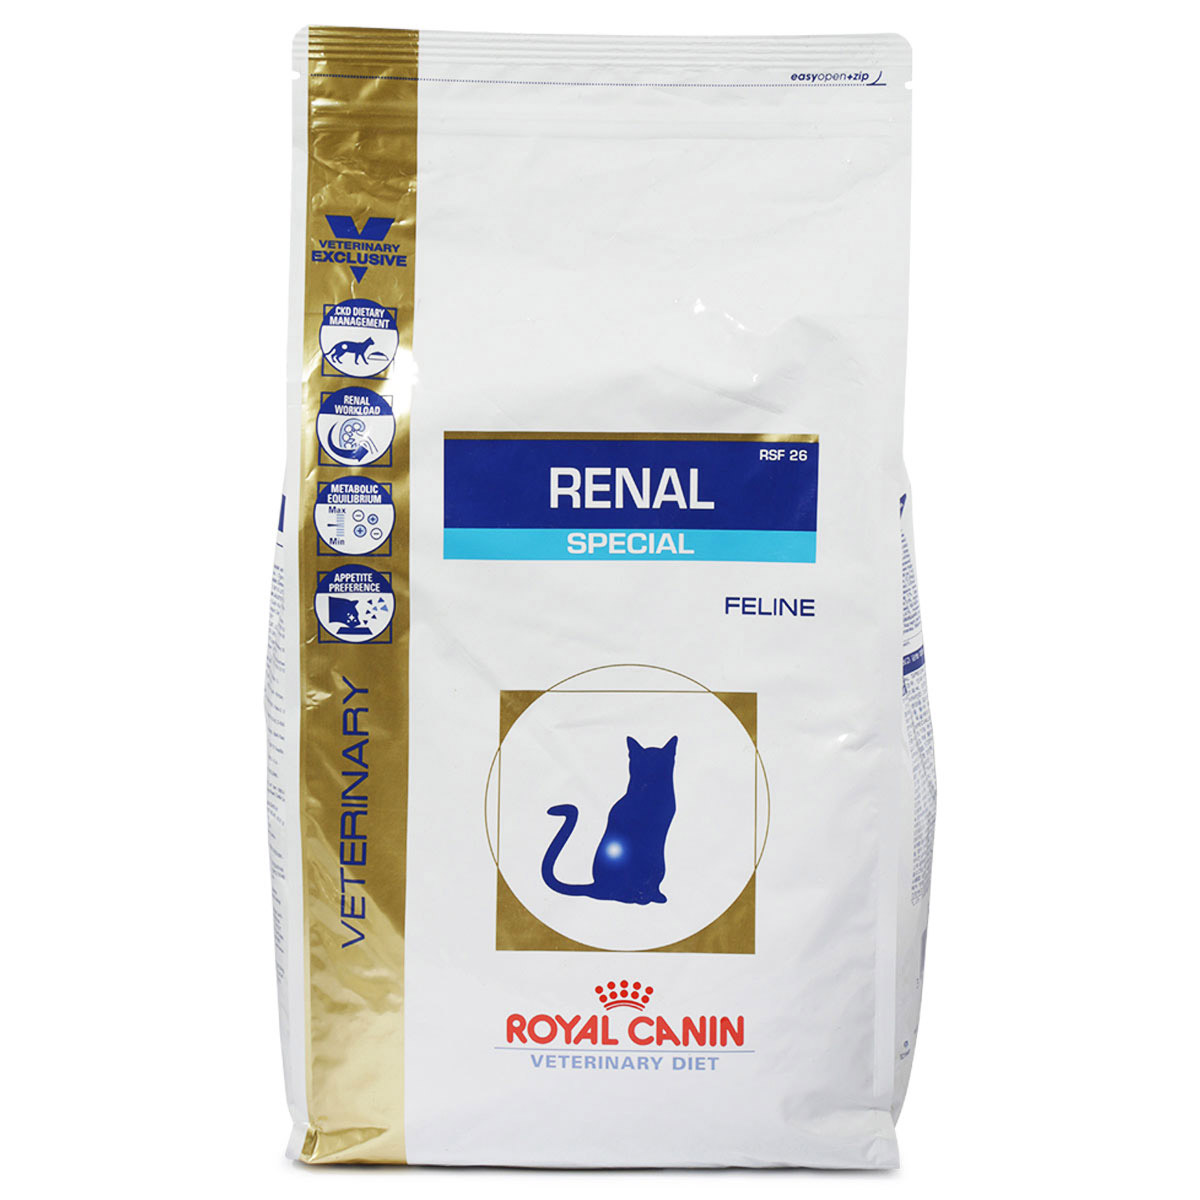 royal canin vet diet renal special rsf 26 kaufen bei zooroyal. Black Bedroom Furniture Sets. Home Design Ideas